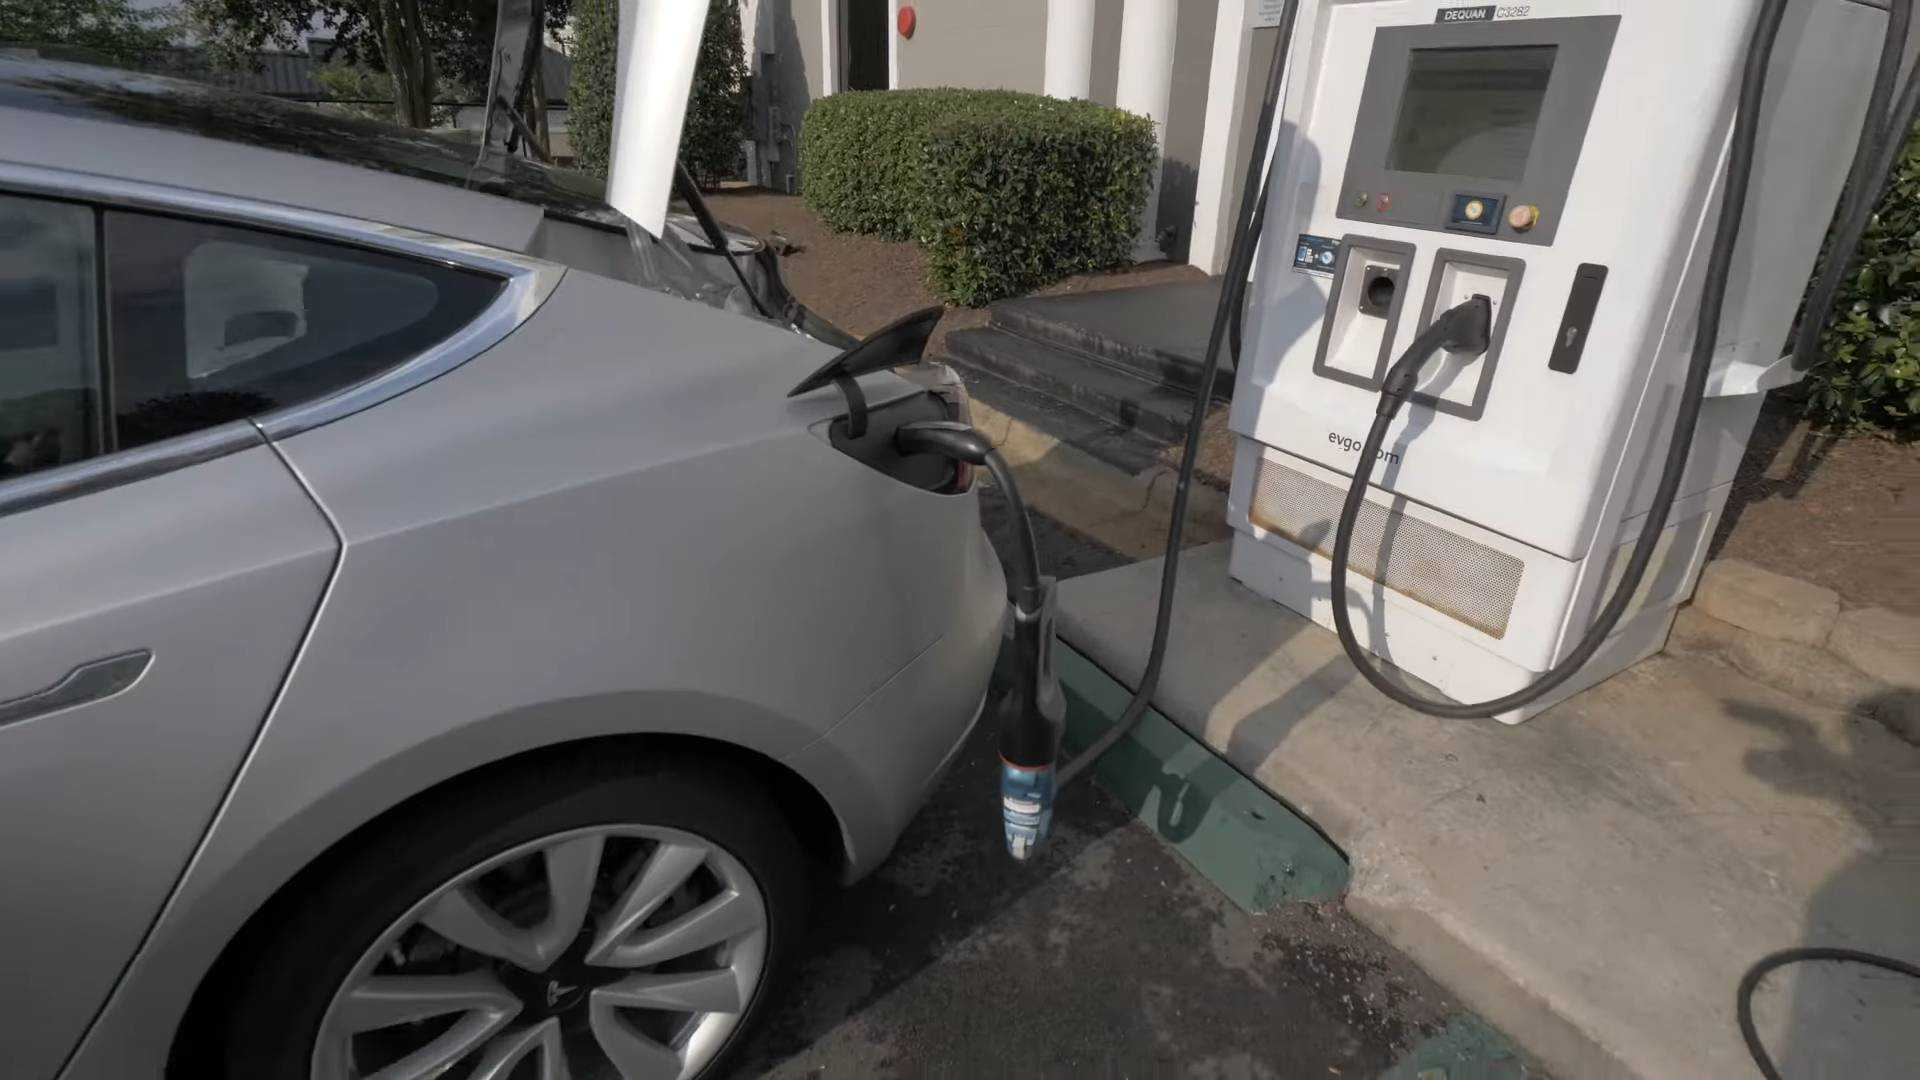 Is The Tesla Model 3 Already Able To Use A CHAdeMO Charger?